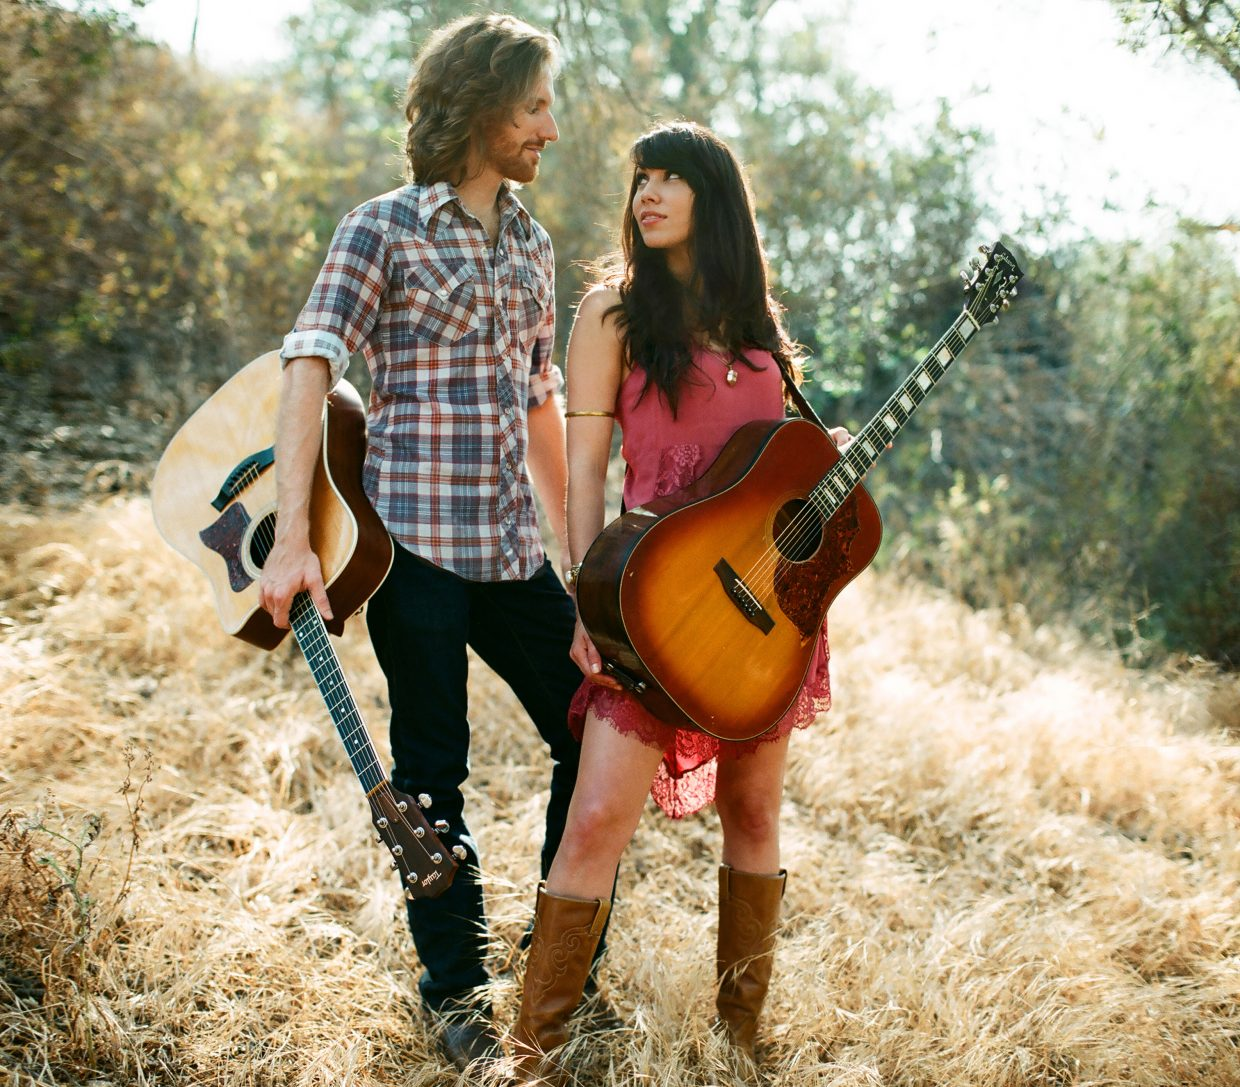 Dawn and Hawkes will perform at the Chief Theater on Oct. 6. The bar opens at 6:30 p.m., and the show starts at 7 p.m.